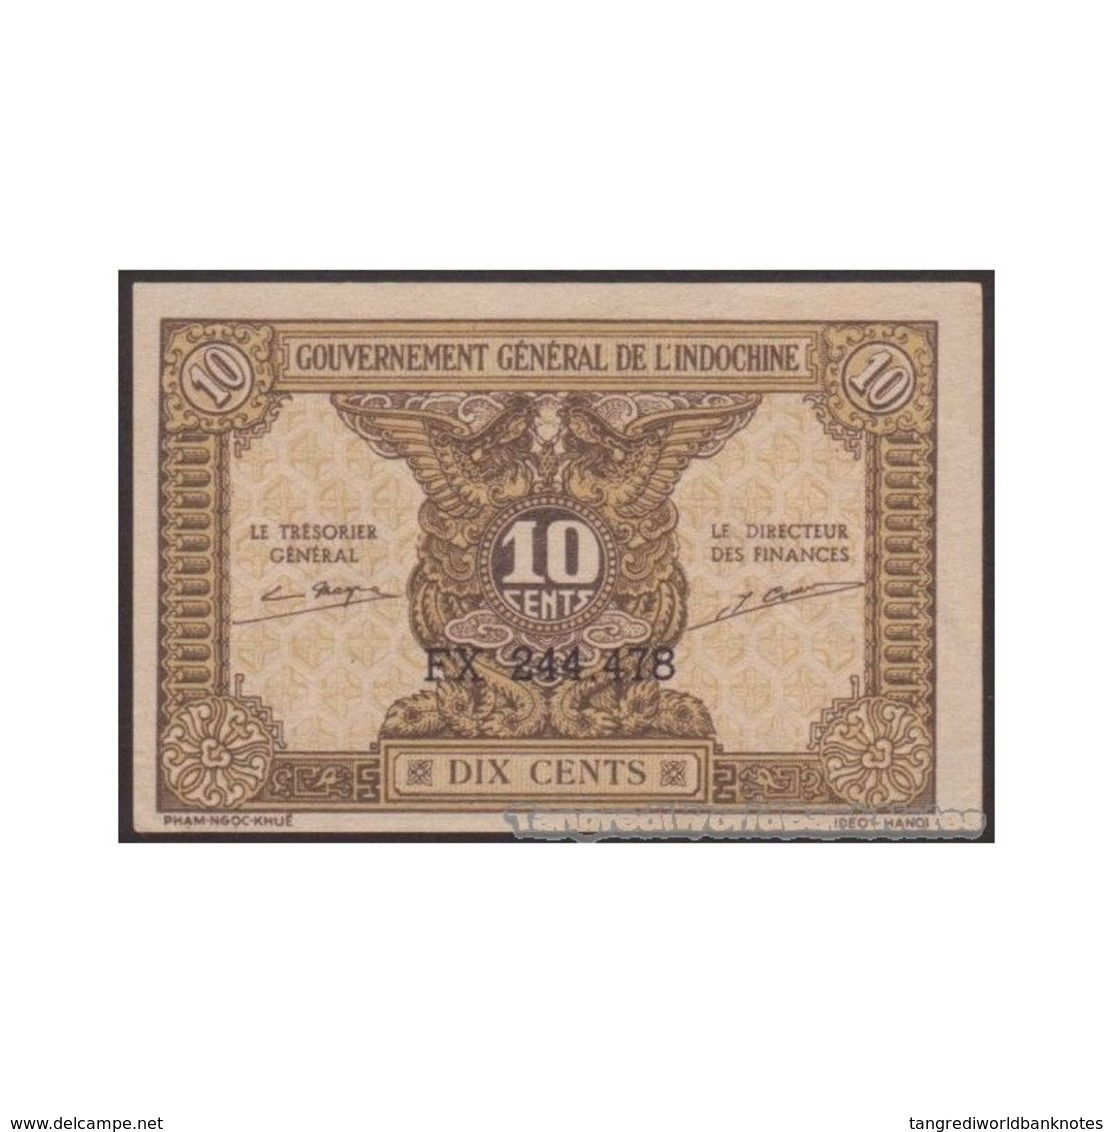 TWN - FRENCH INDO-CHINA 89a - 10 Cents 1942 Serial # Format XX 123.456 - Various Suffixes XF+ - Indocina